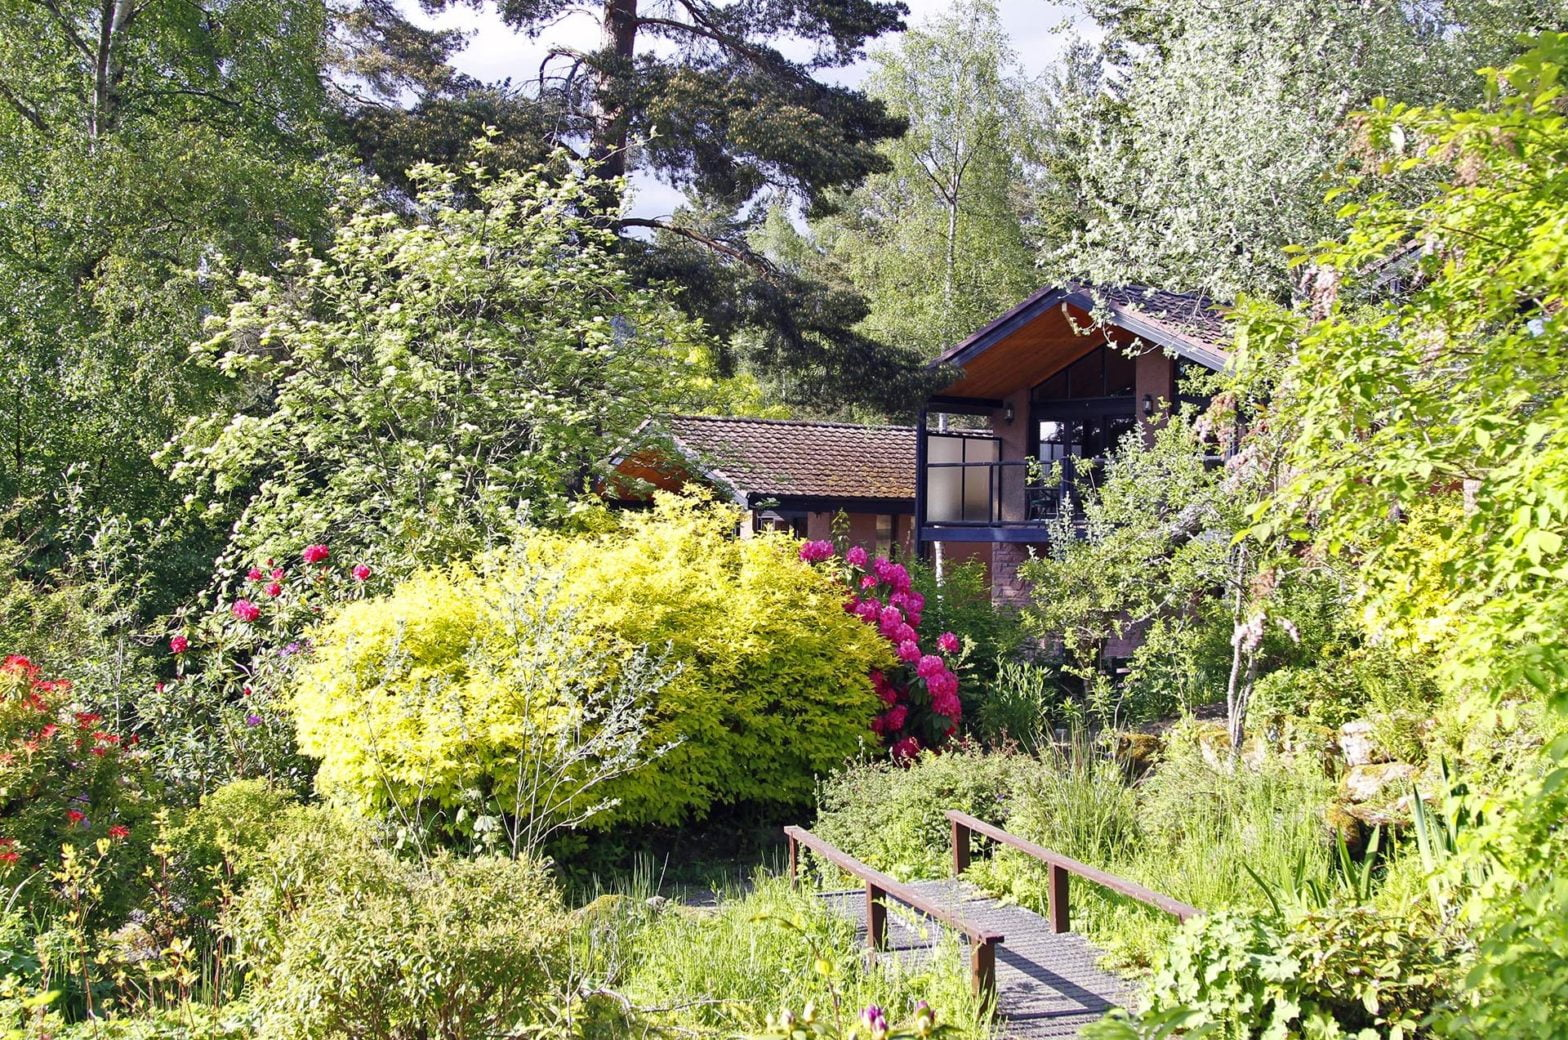 Rental Page - View of Lodges